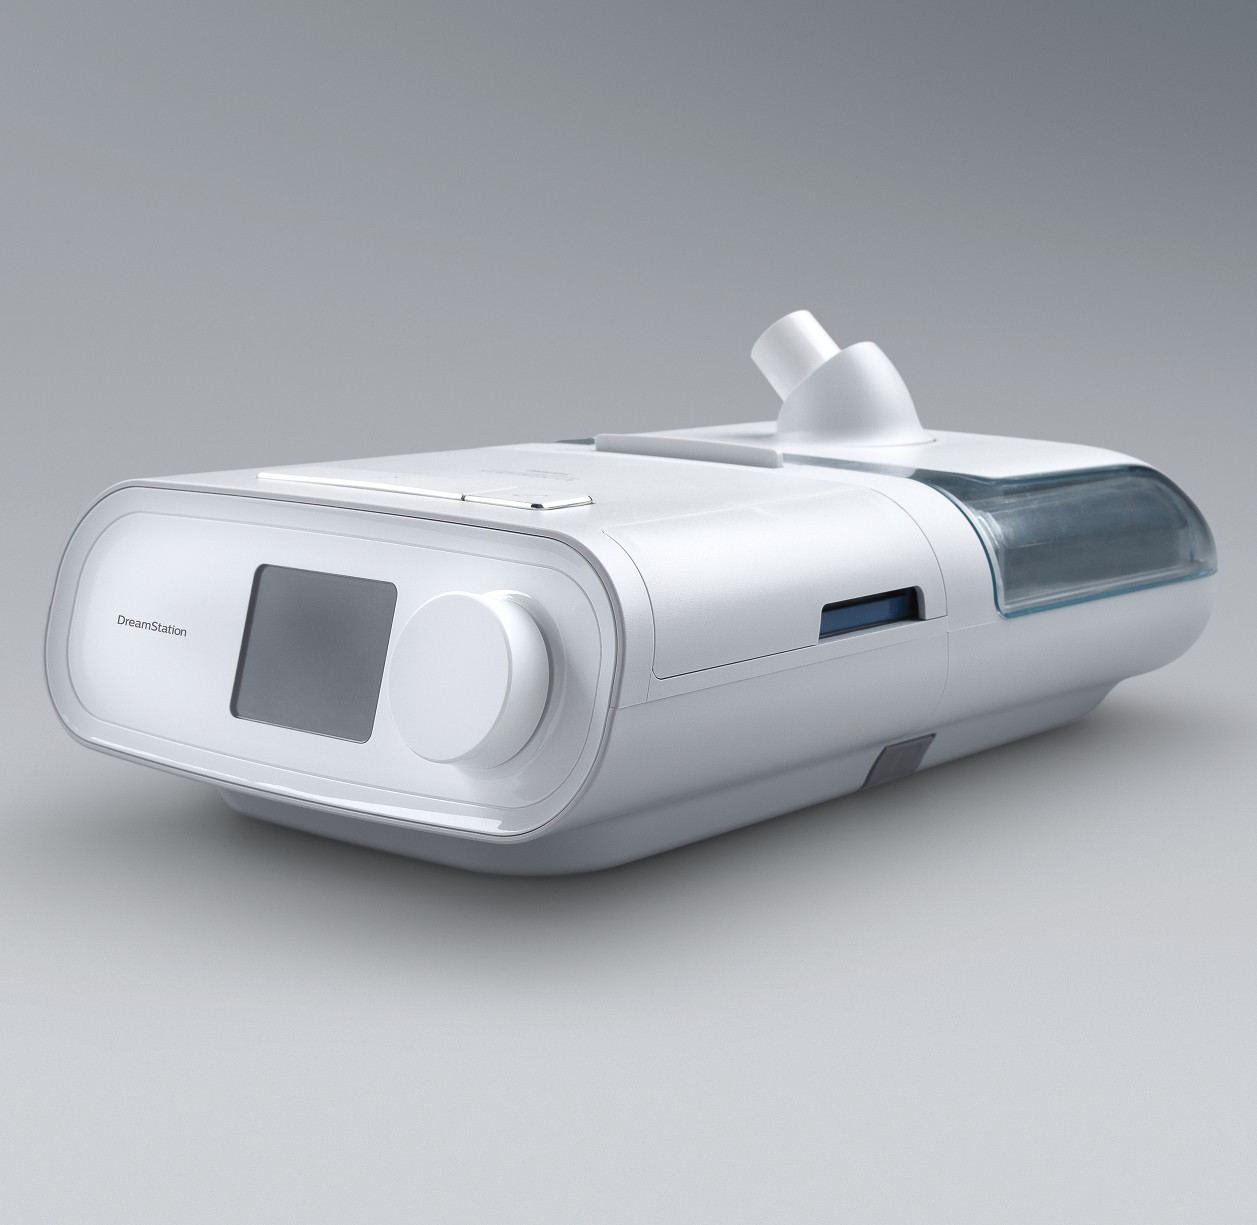 DreamStation-CPAP-Machine-1.jpg